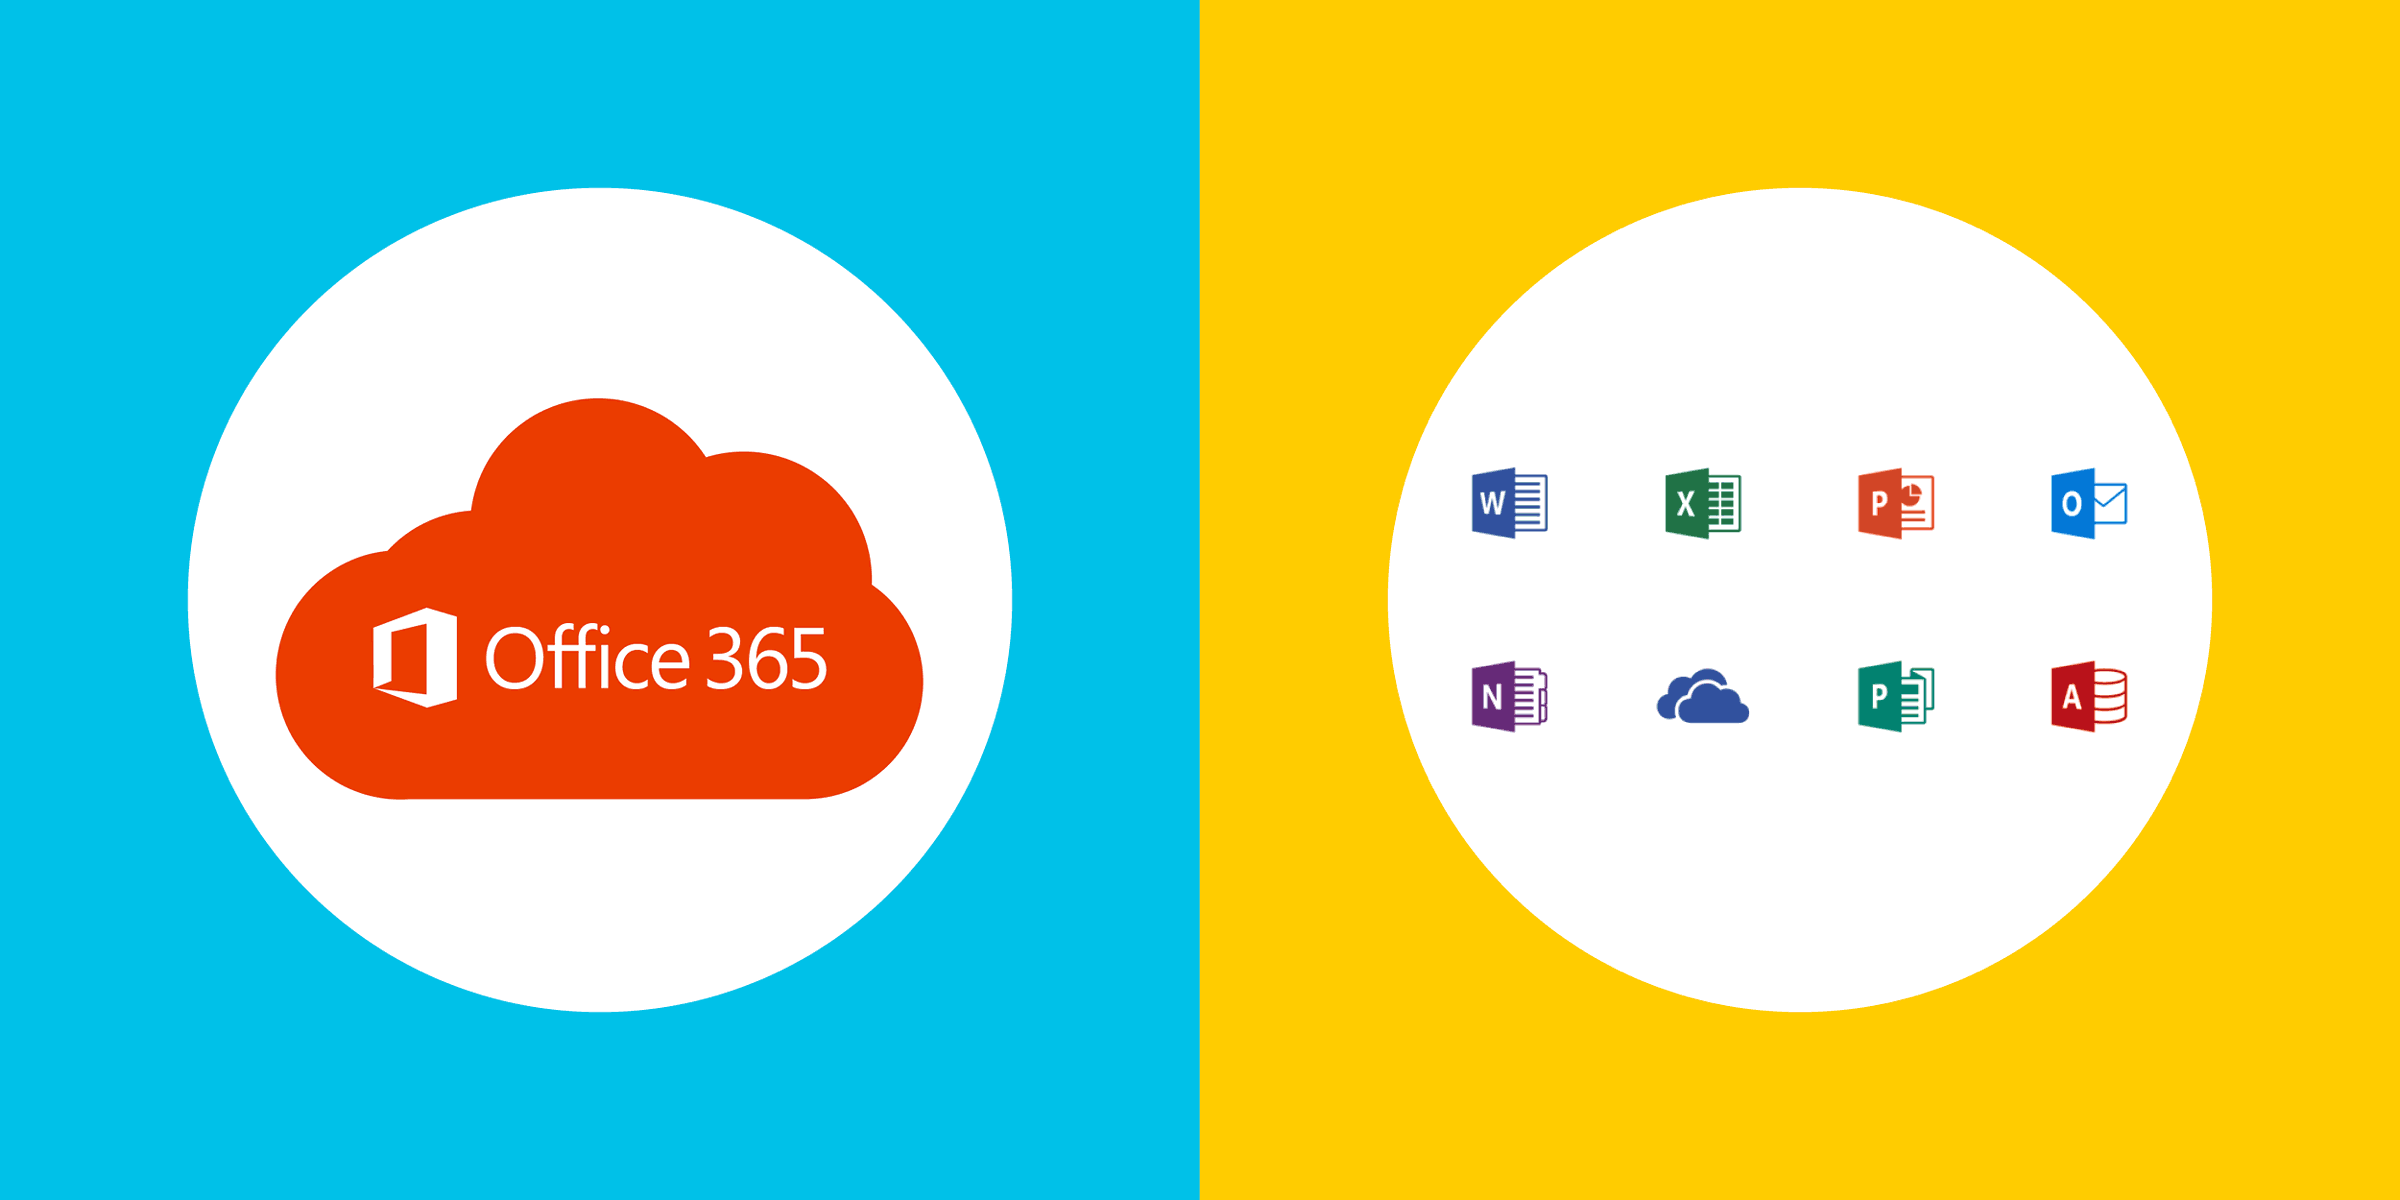 illustration with Microsoft Office 365, Word, Excel, Project, Outlook, OneNote, Cloud, Publisher, and Access logos